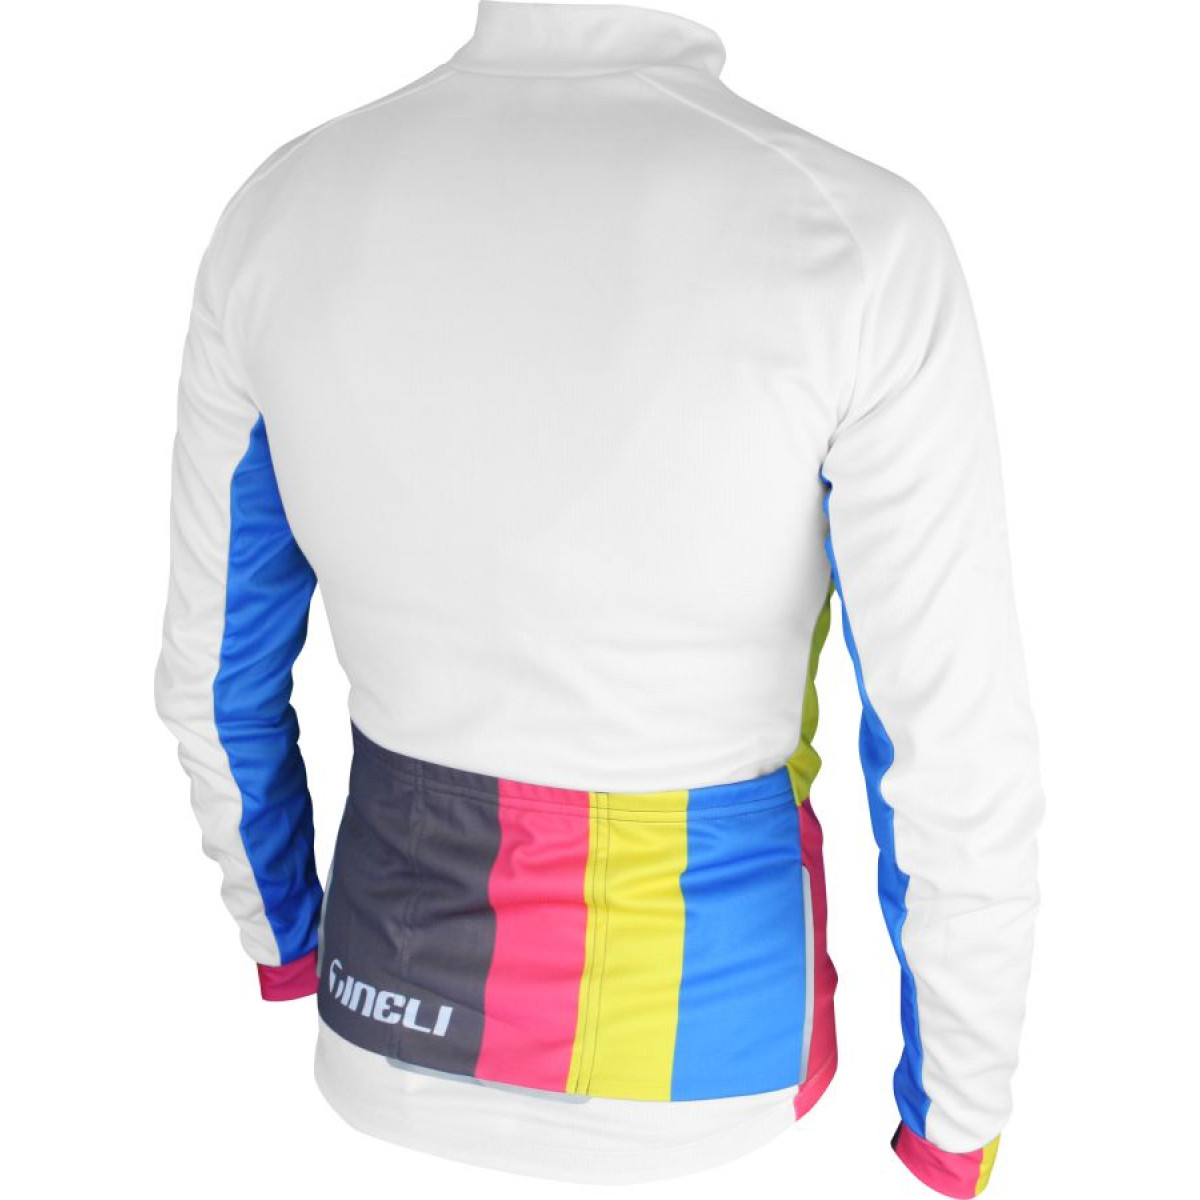 428 CandyIntermediateBack Candy Intermediate Jacket